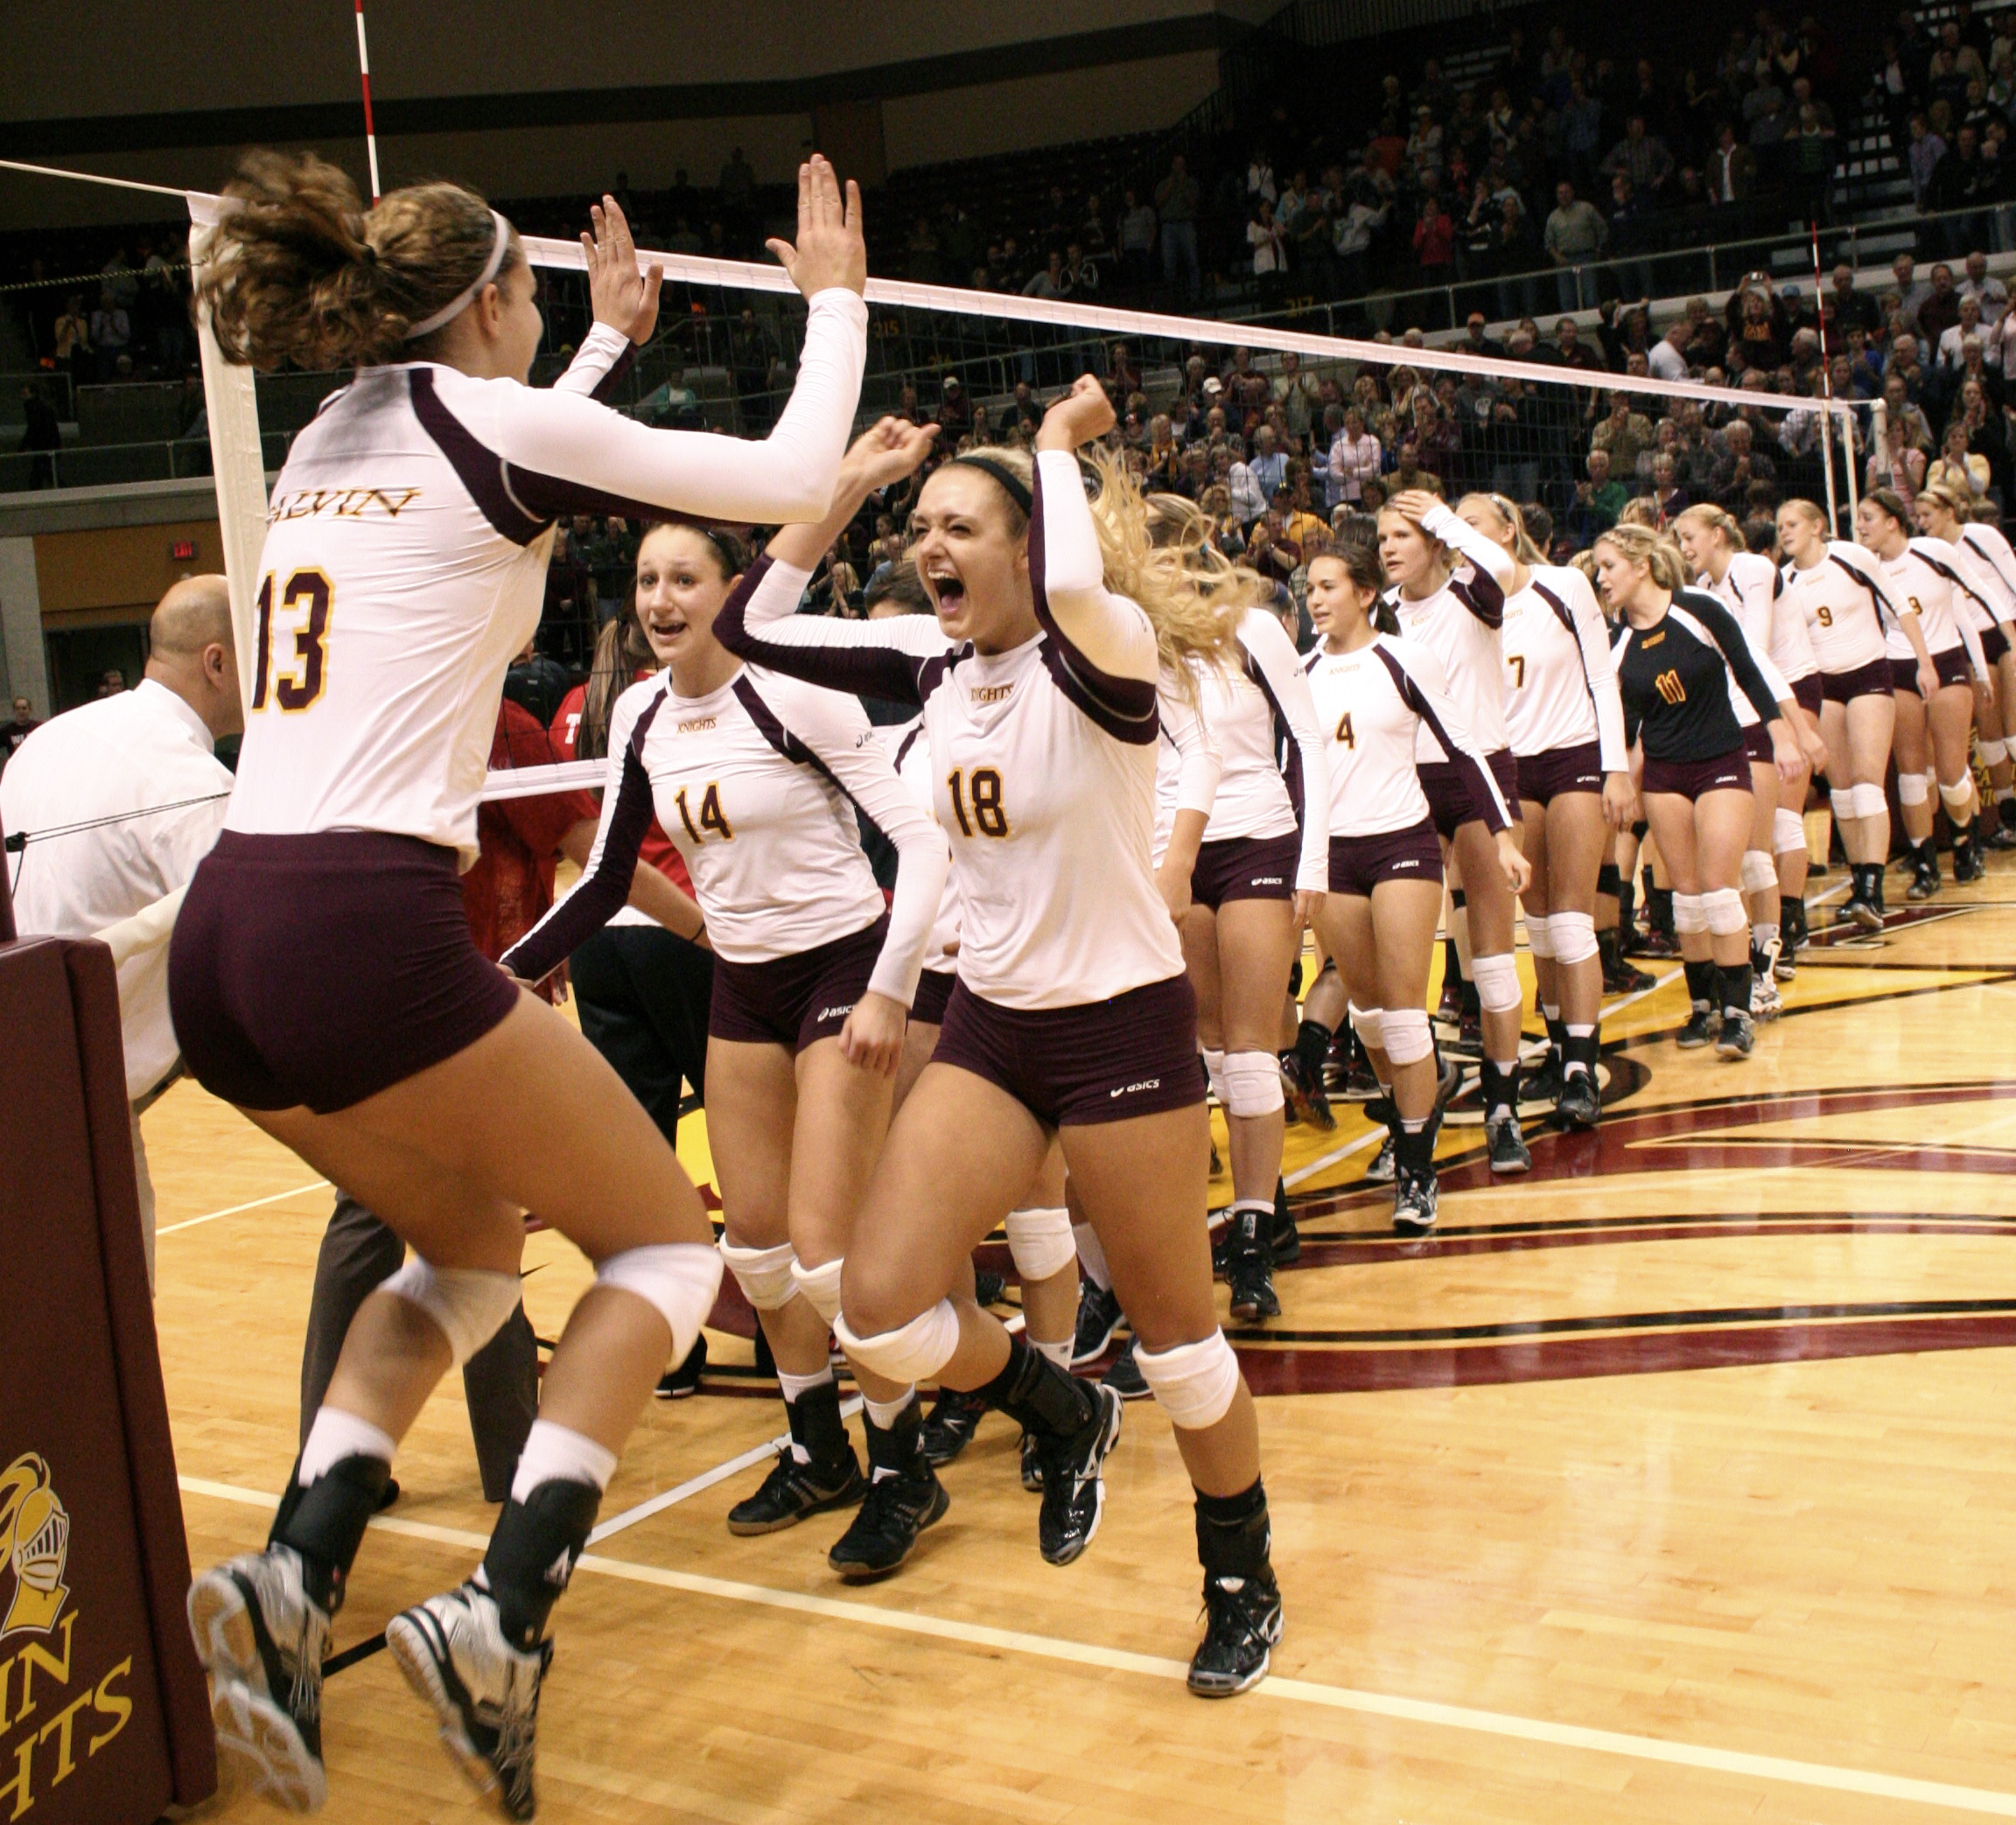 calvin college volleyball 1,497 followers, 50 following, 160 posts - see instagram photos and videos from calvin college volleyball � (@calvin_volleyball.